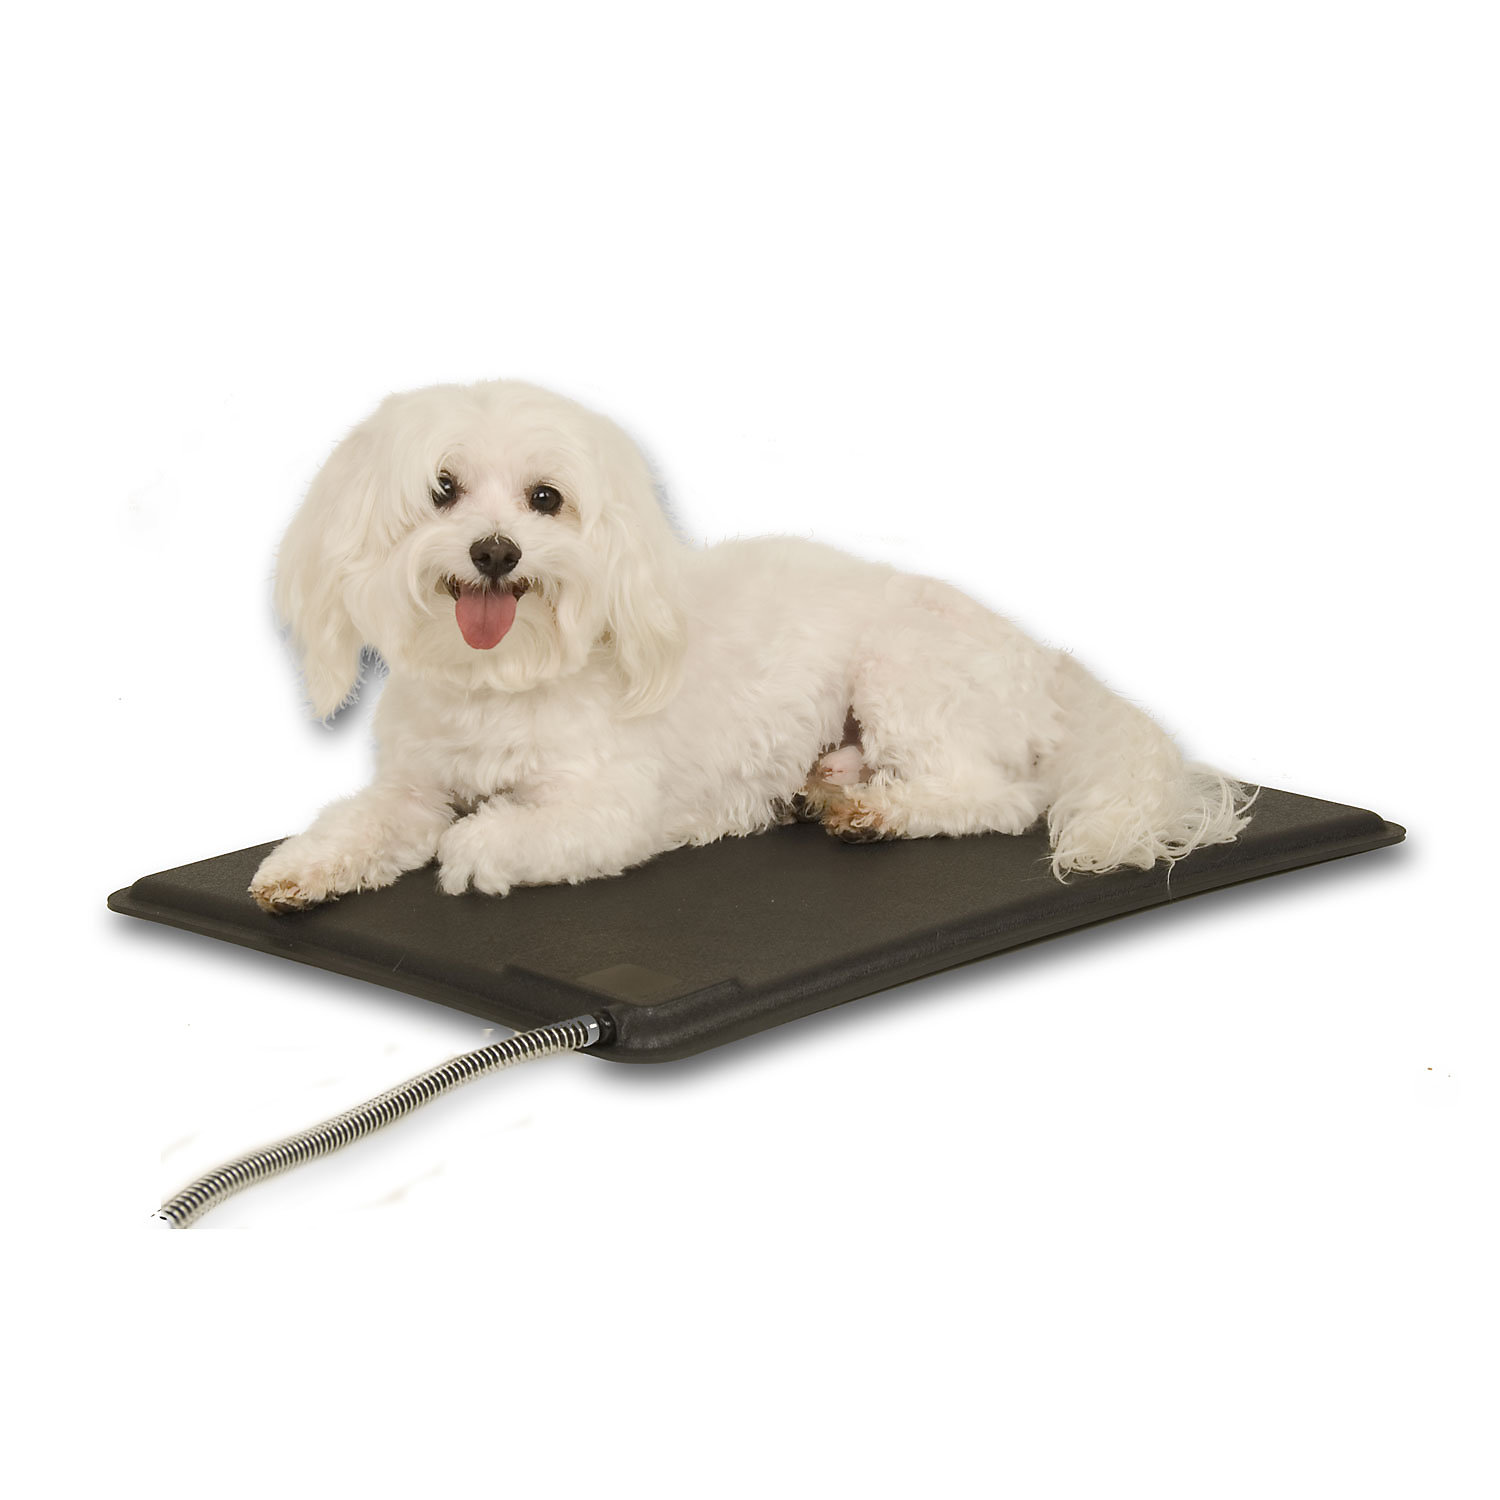 Kh Lectro Kennel Heated Pad Cover 12.5l X 18.5w Small Black